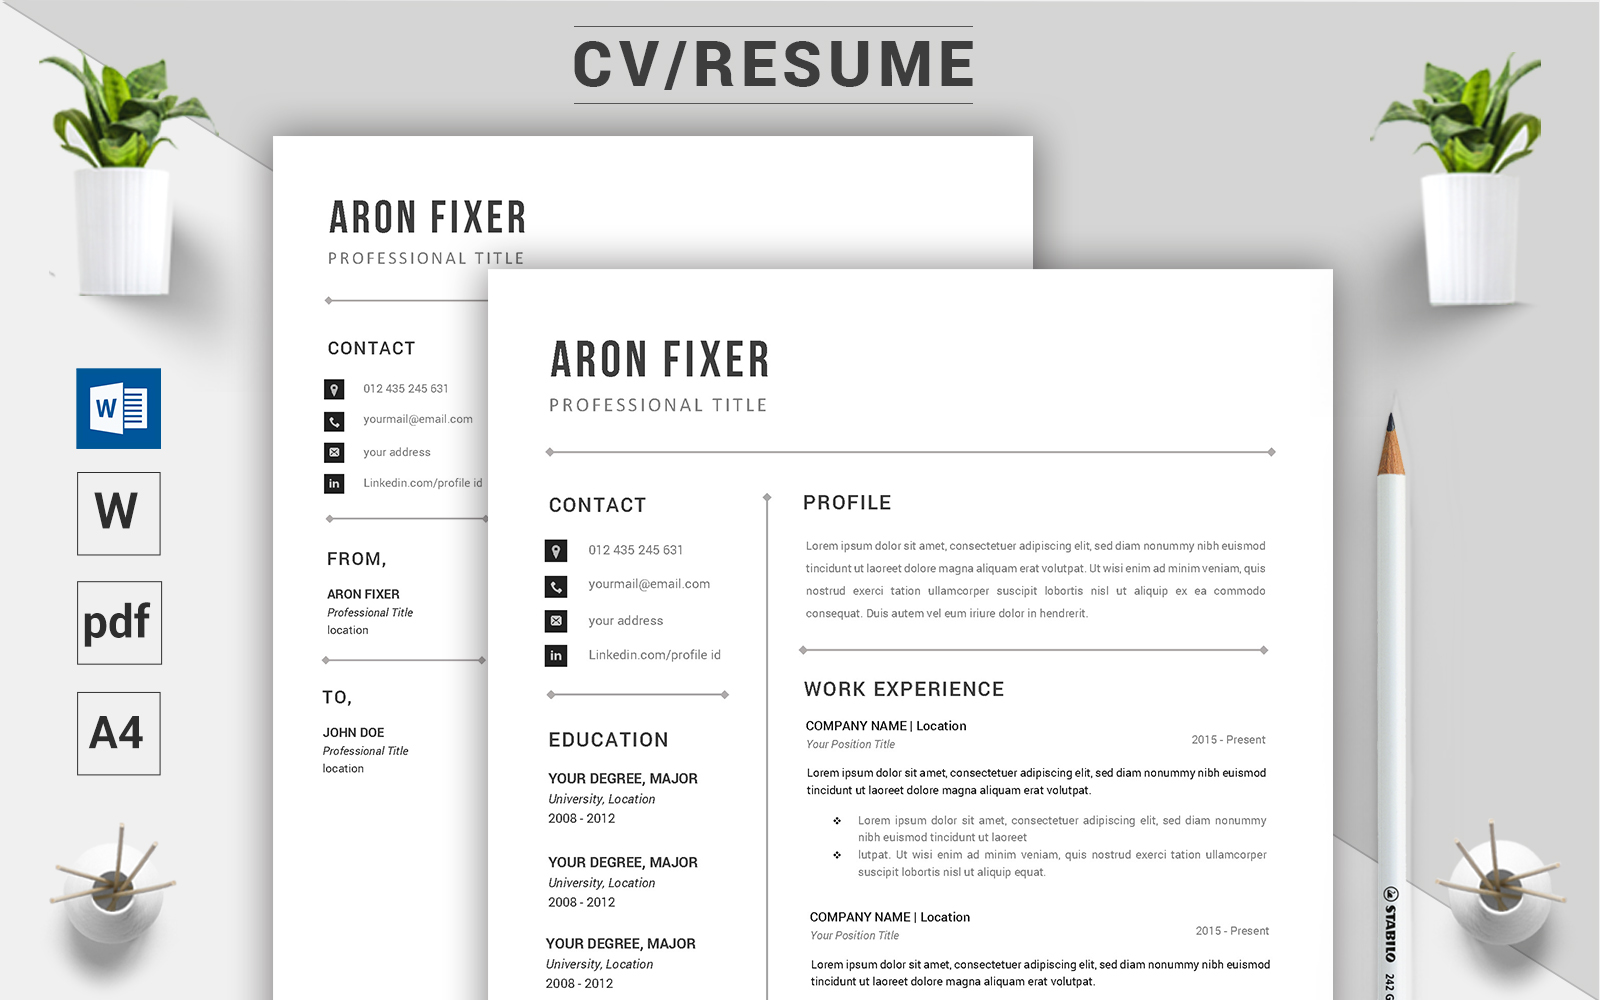 Aron Fixer - CV Resume Template